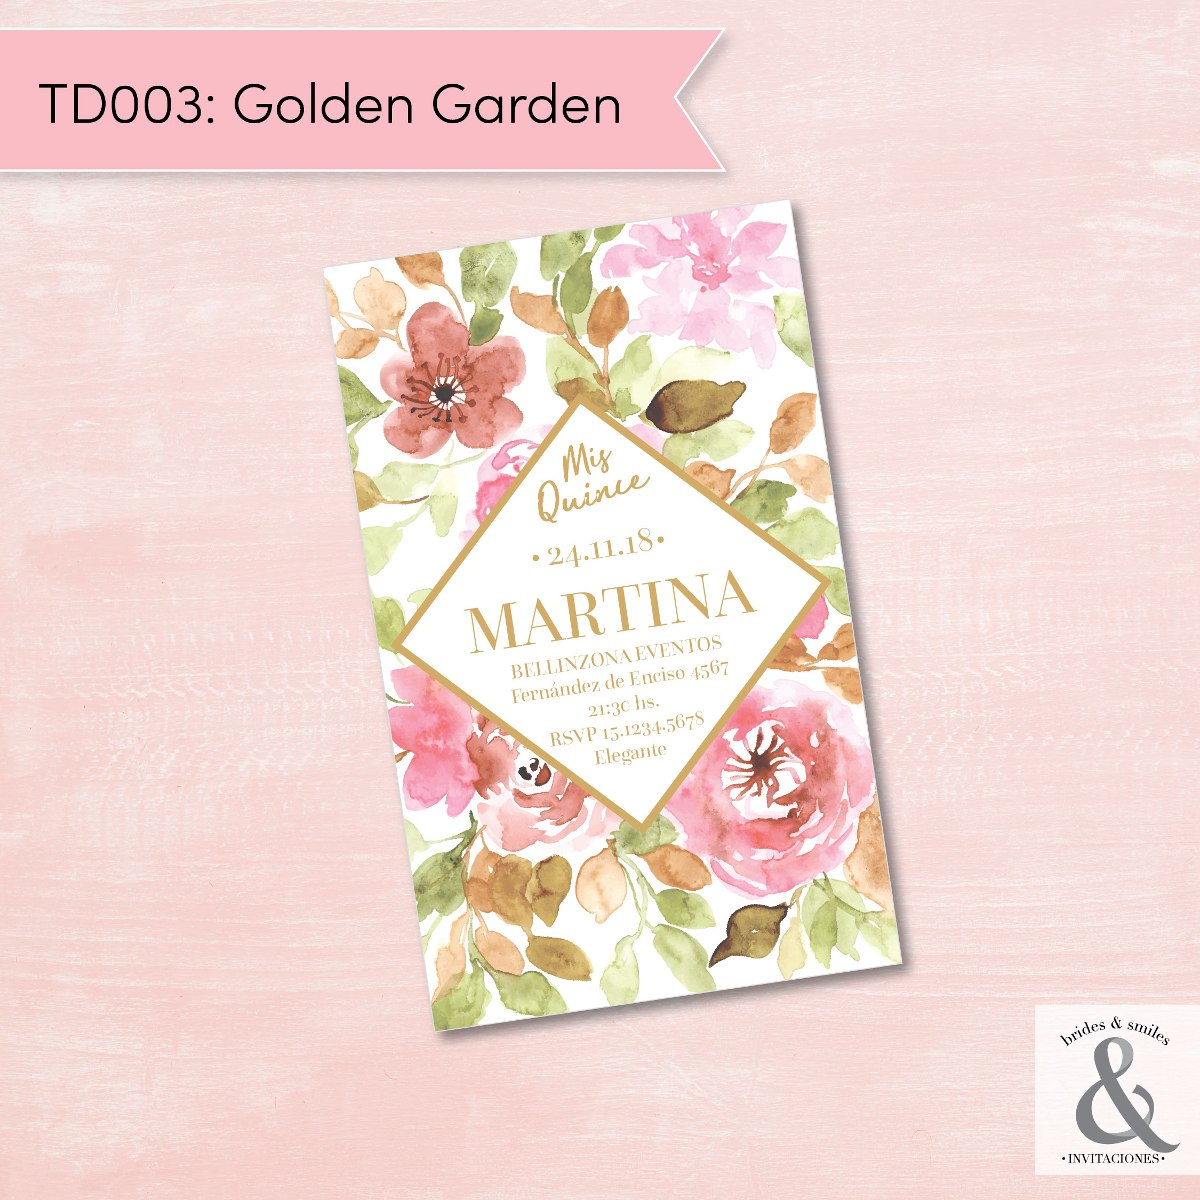 Invitación digital TD003 (Golden Garden)